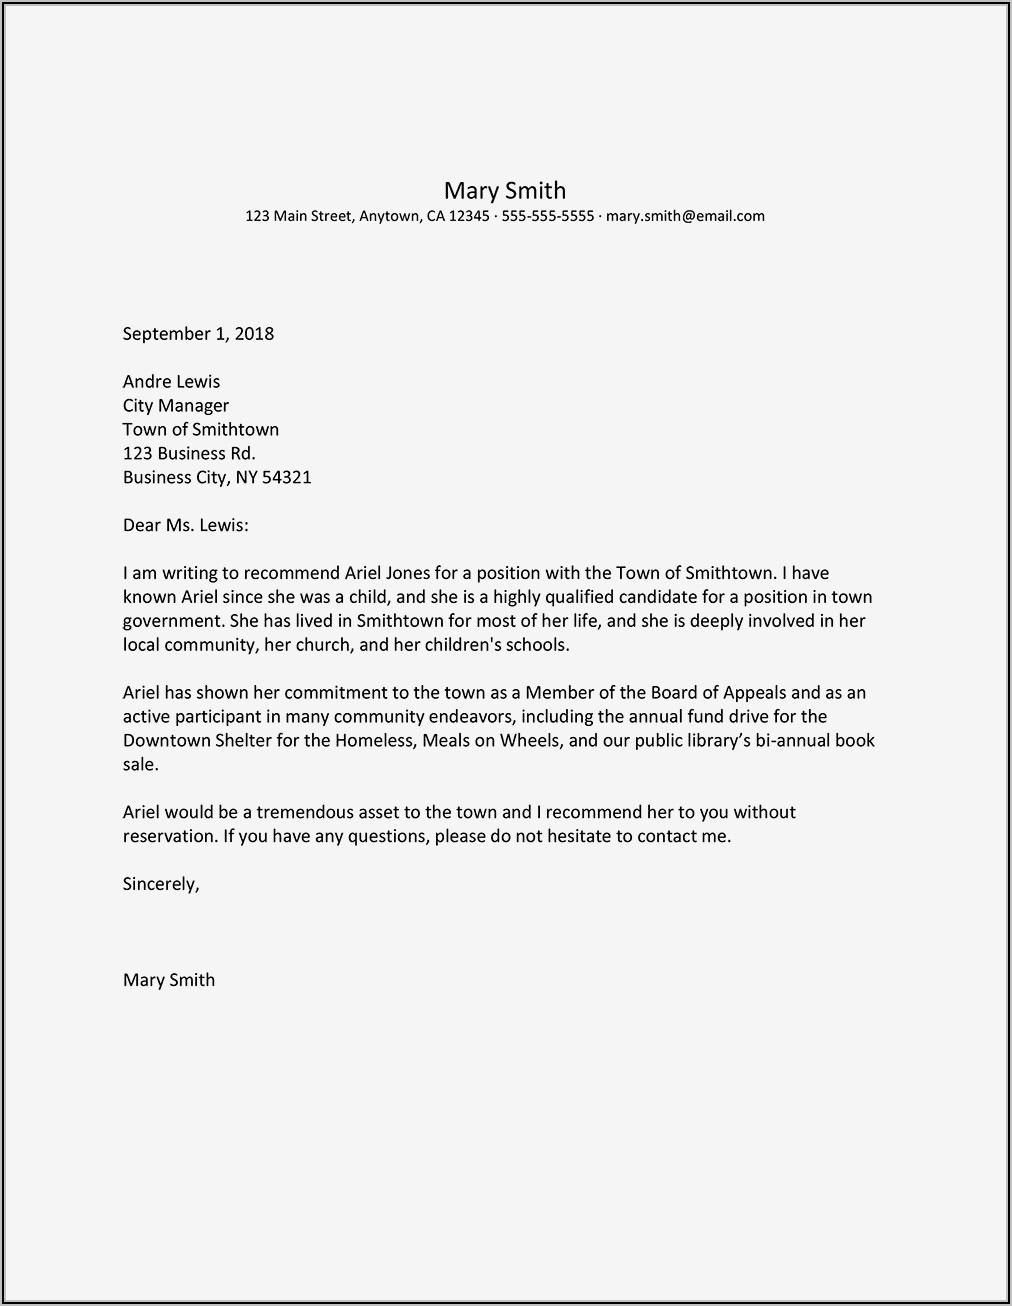 Professional Sample Letter Of Recommendation For Coworker